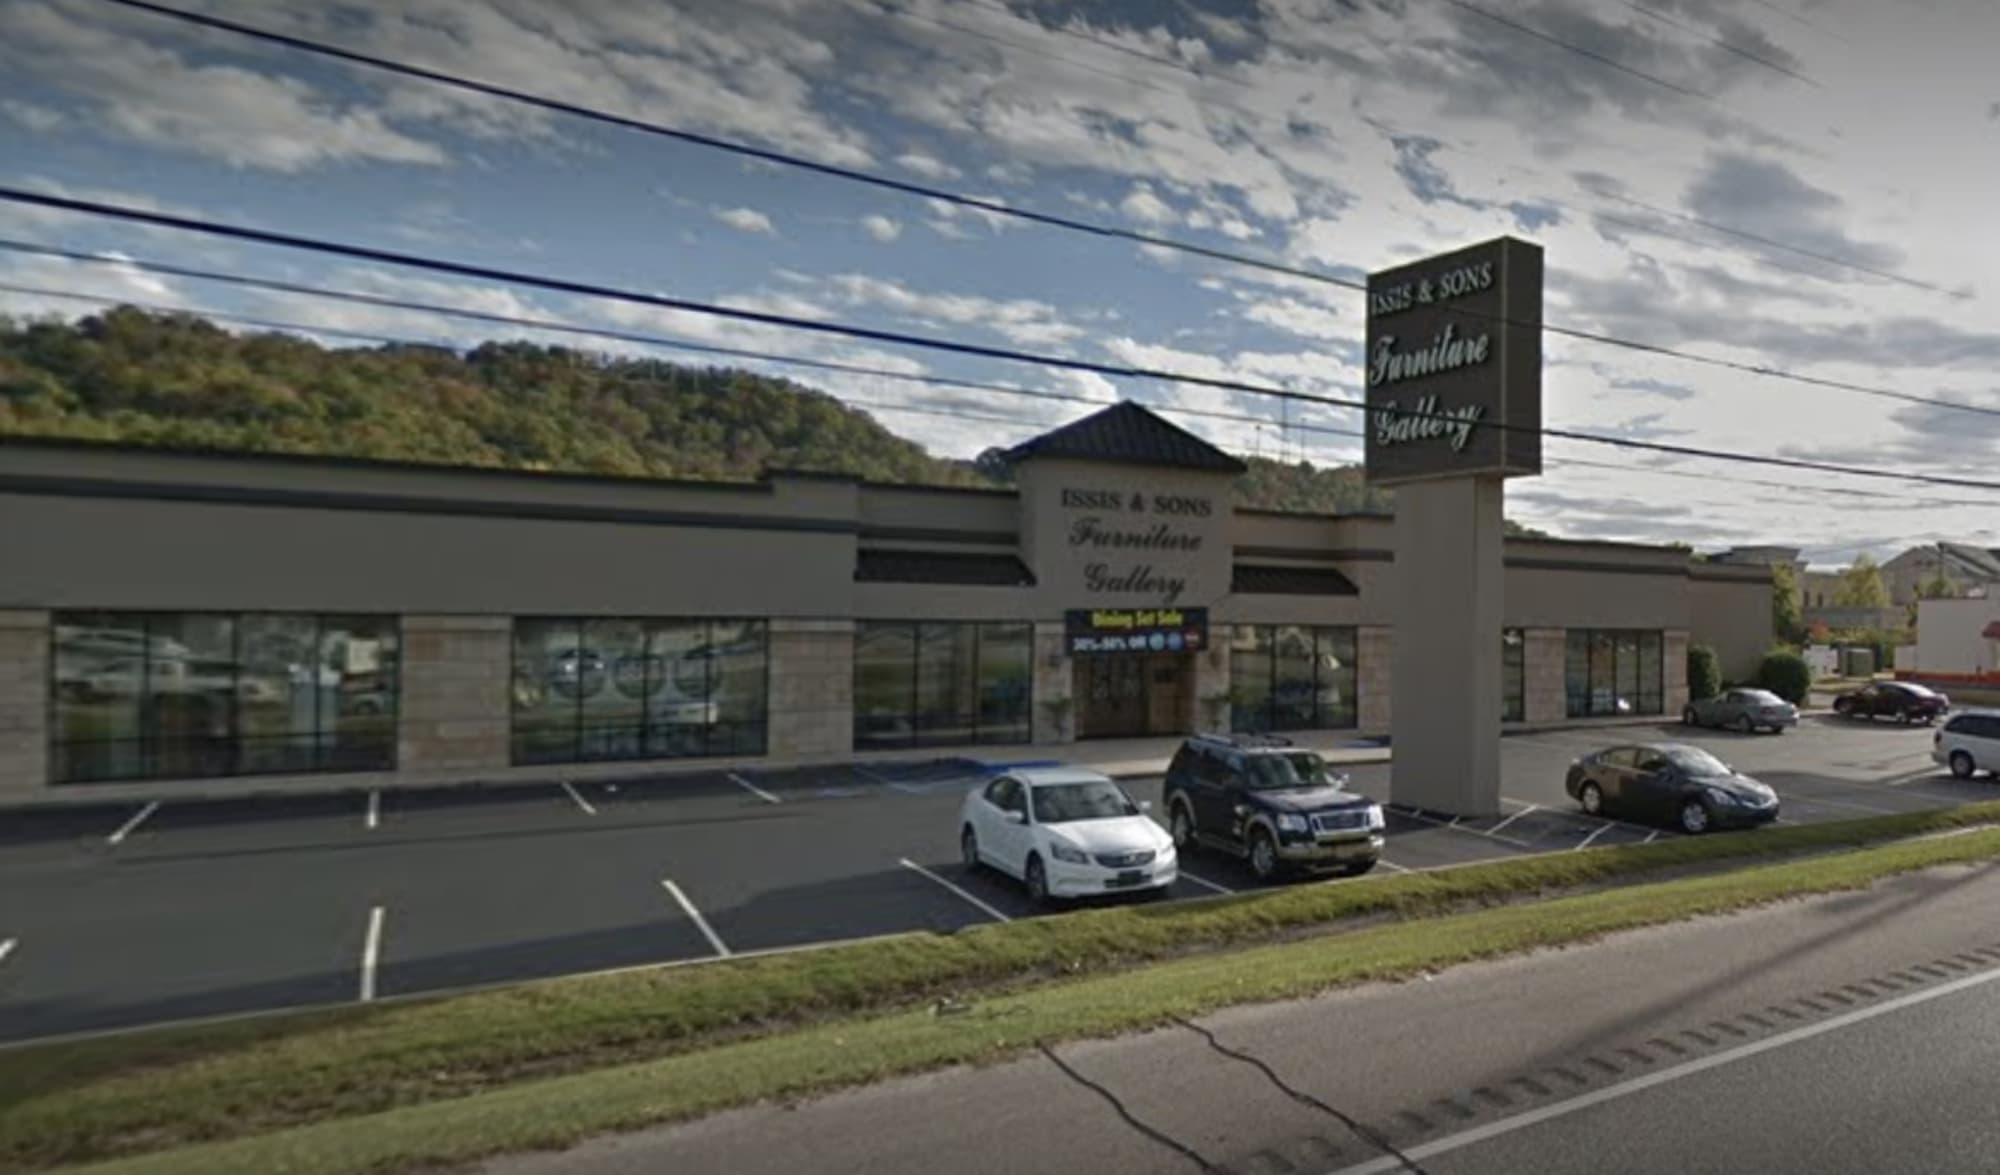 Issis And Sons - 250 Cahaba Valley Rd Pelham, AL 35124